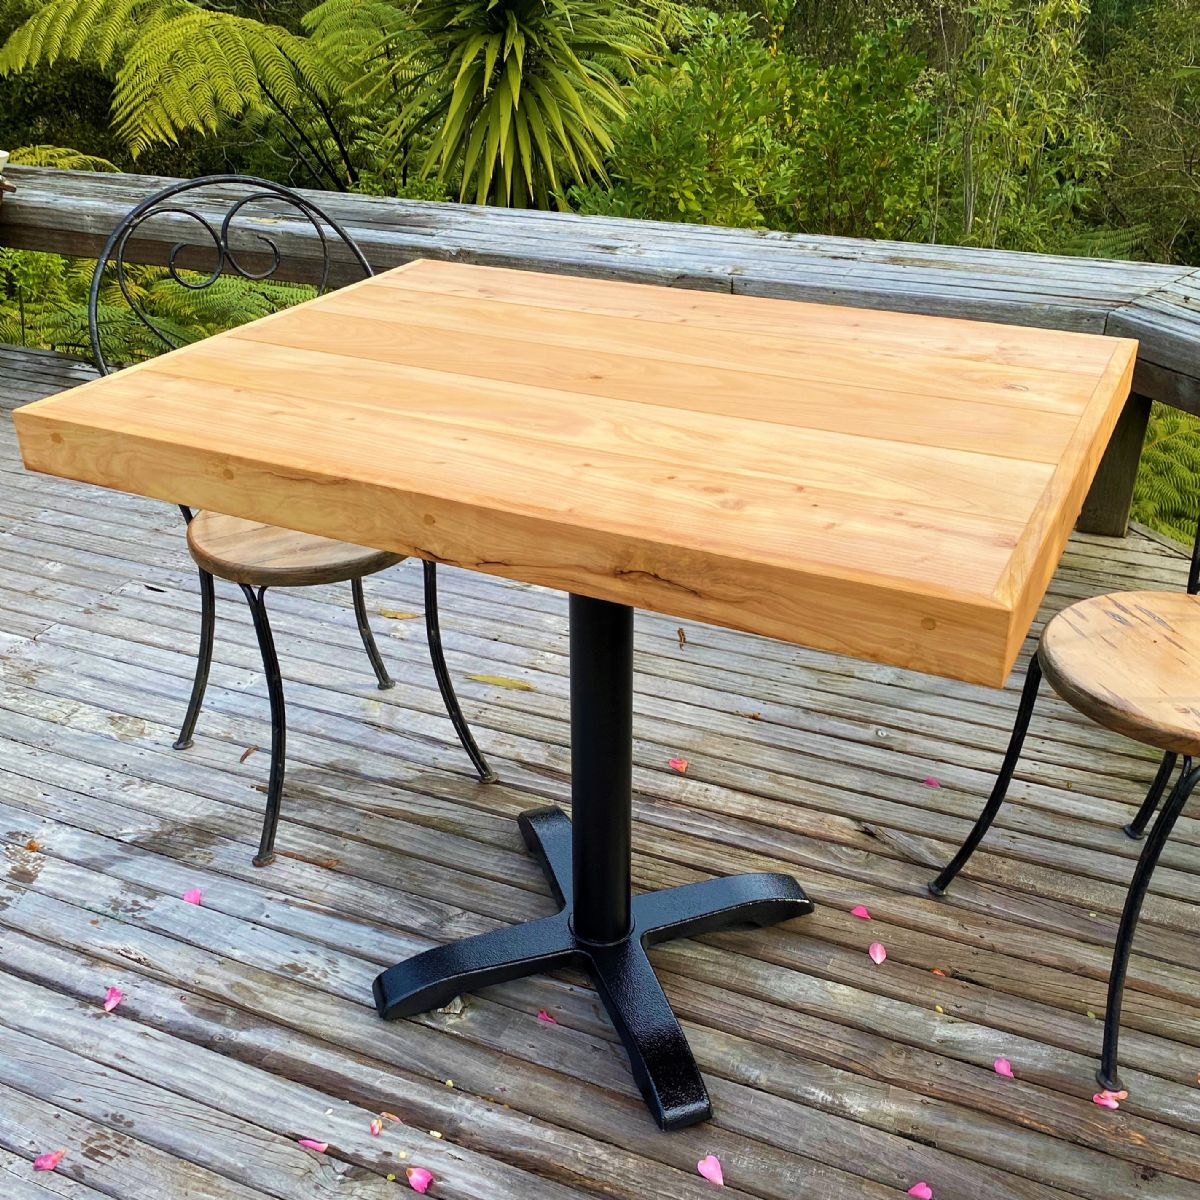 MACROCARPA CAFE TABLE: Pedestal Leg